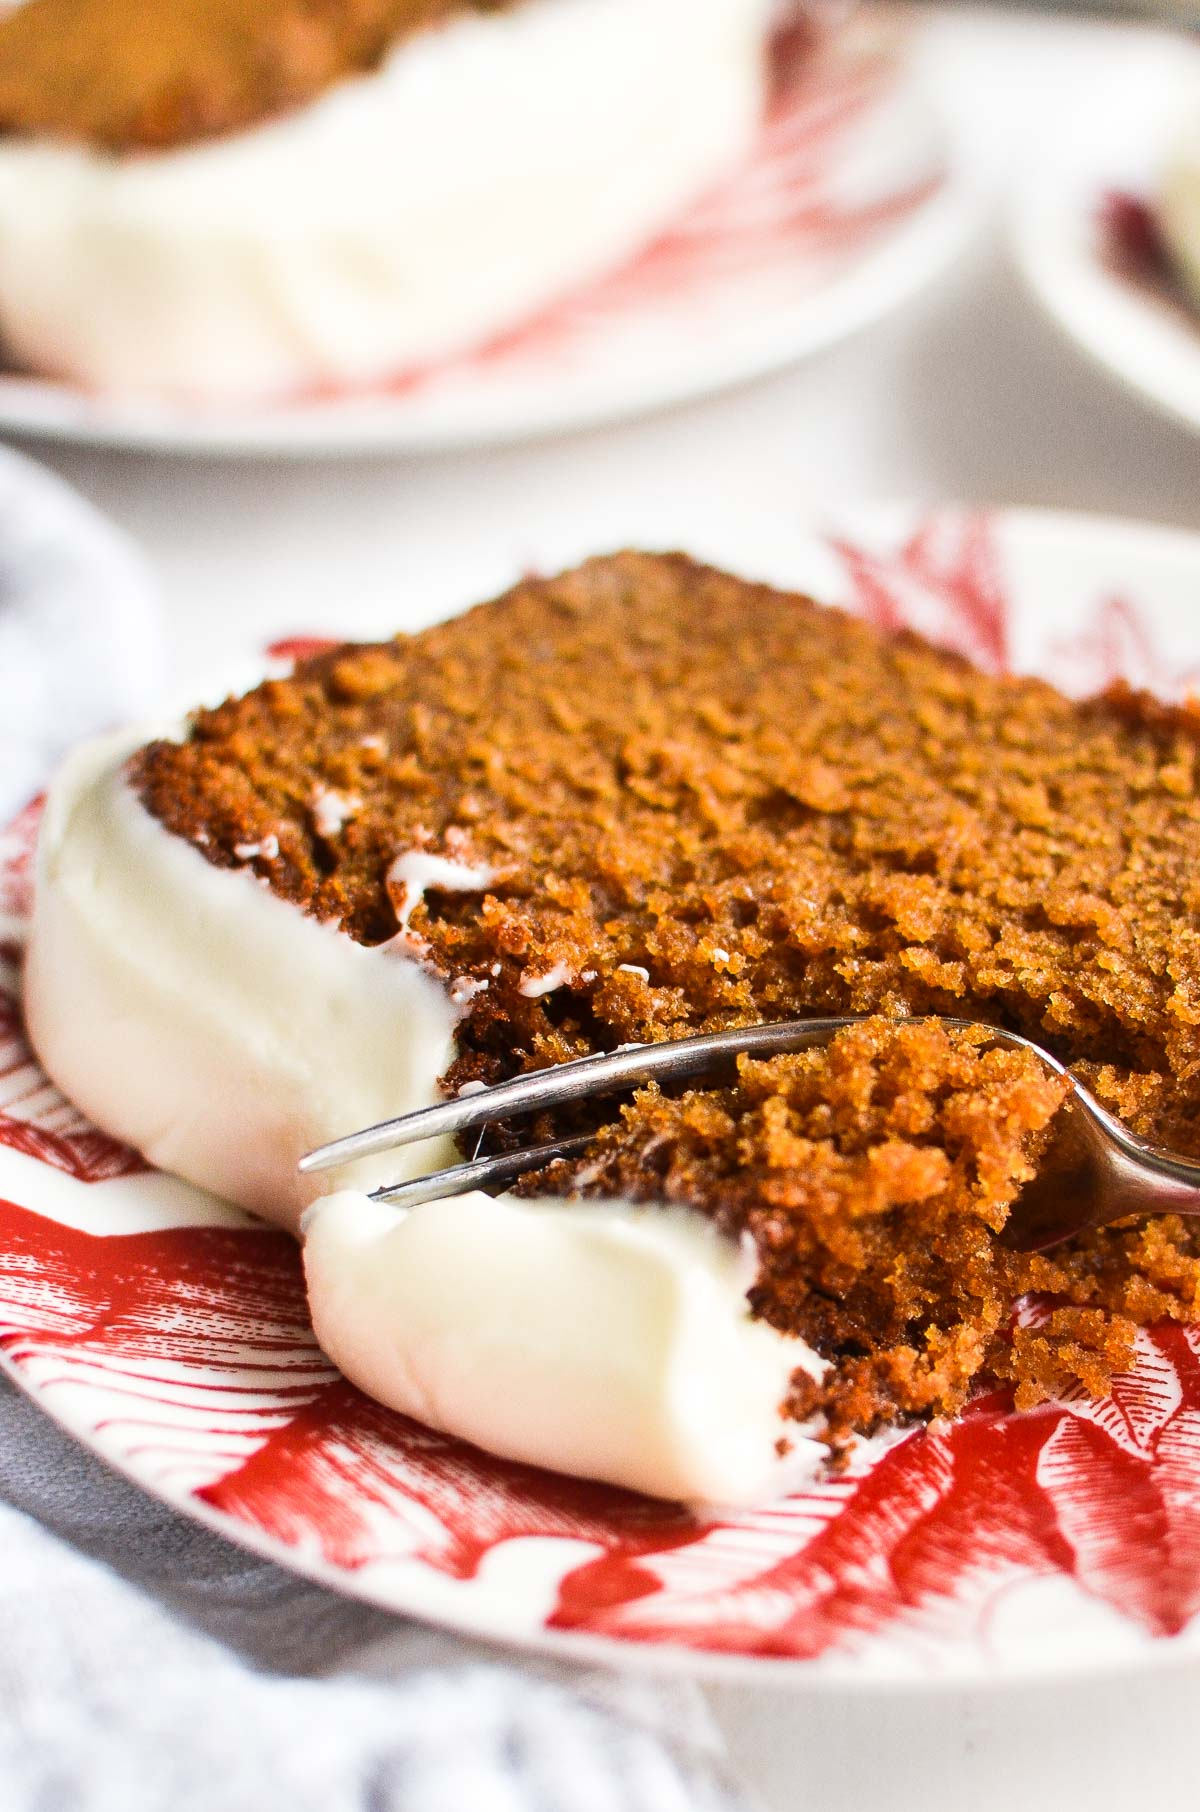 A piece of gingerbread loaf cake with a bite being taken out with a fork.